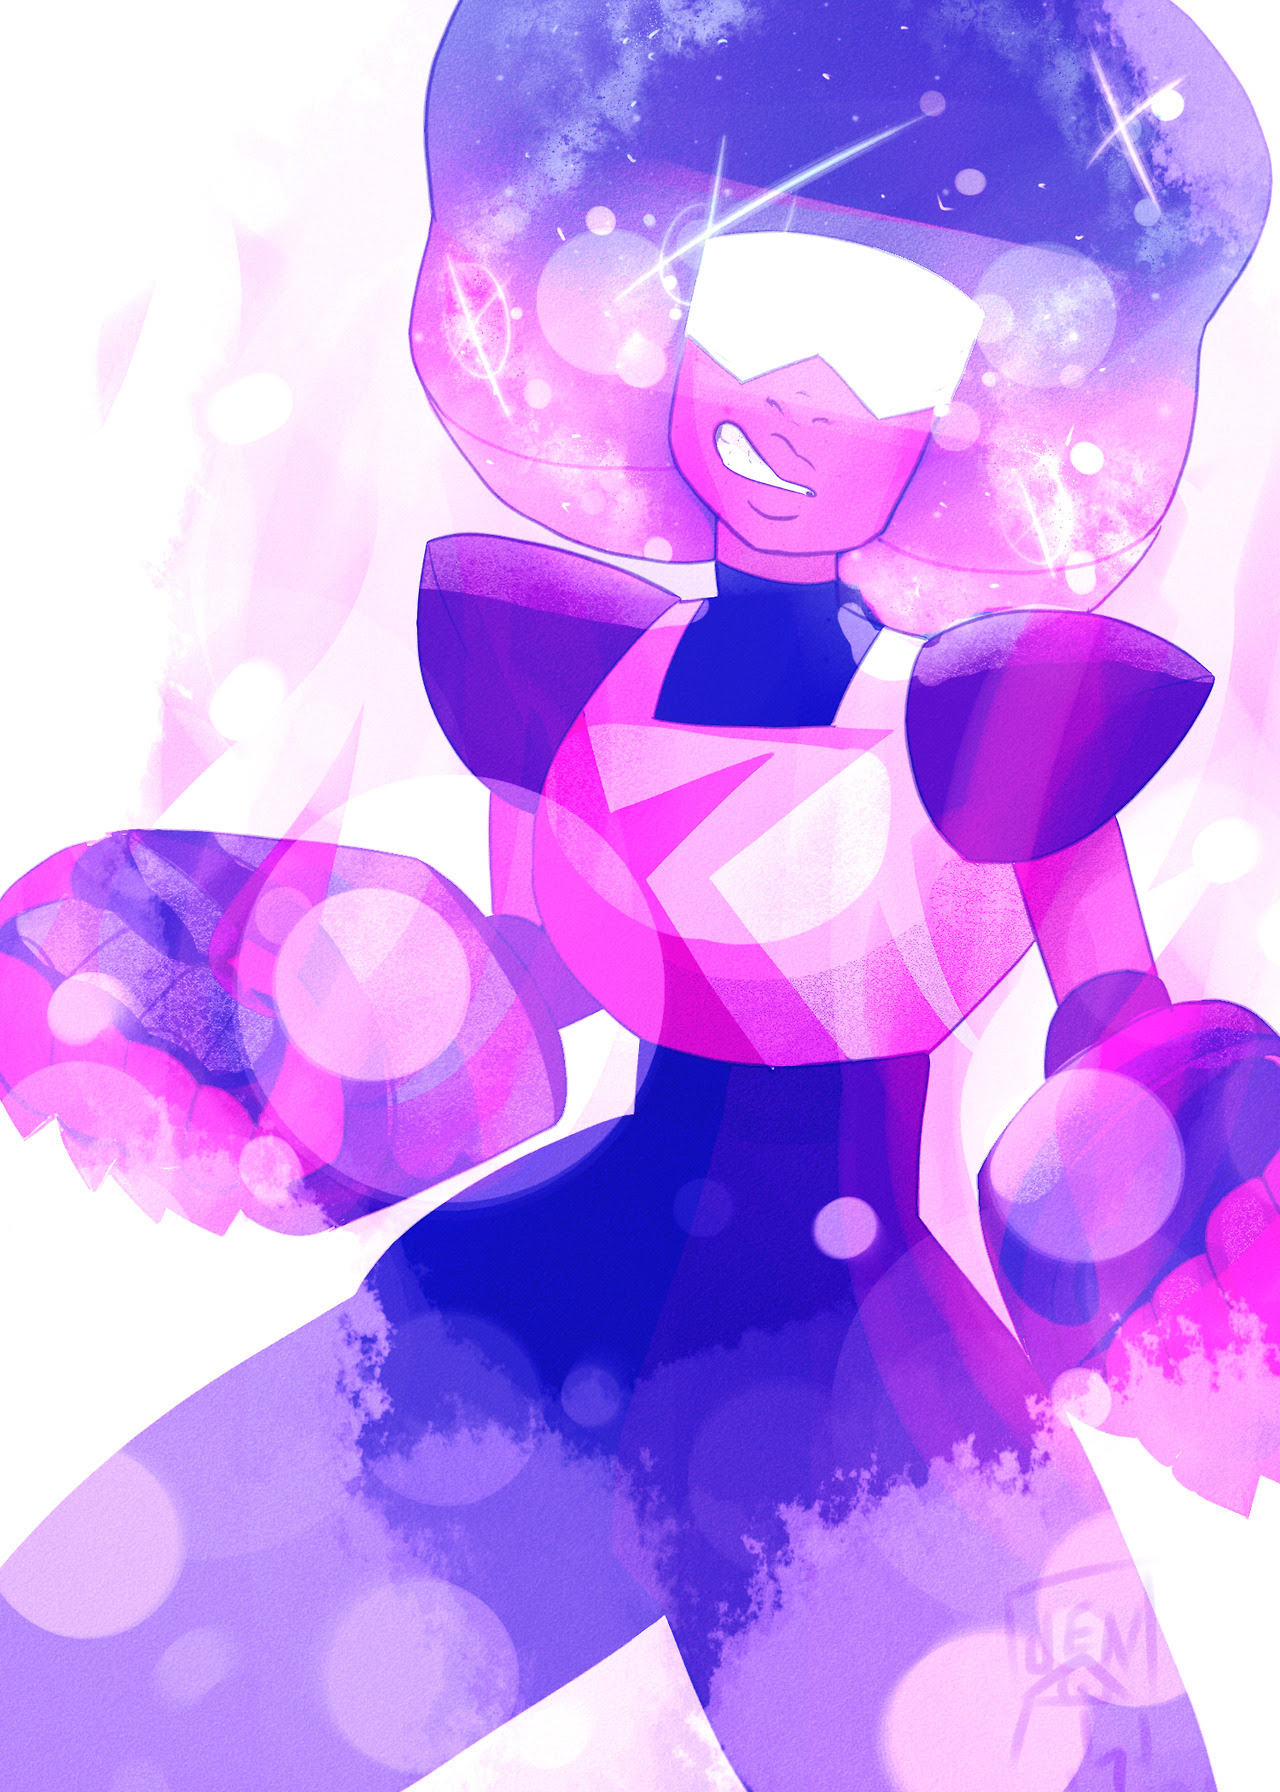 First drawing on my new cintiq is a Galaxy Garnet because she's oUTA THIS WORLD